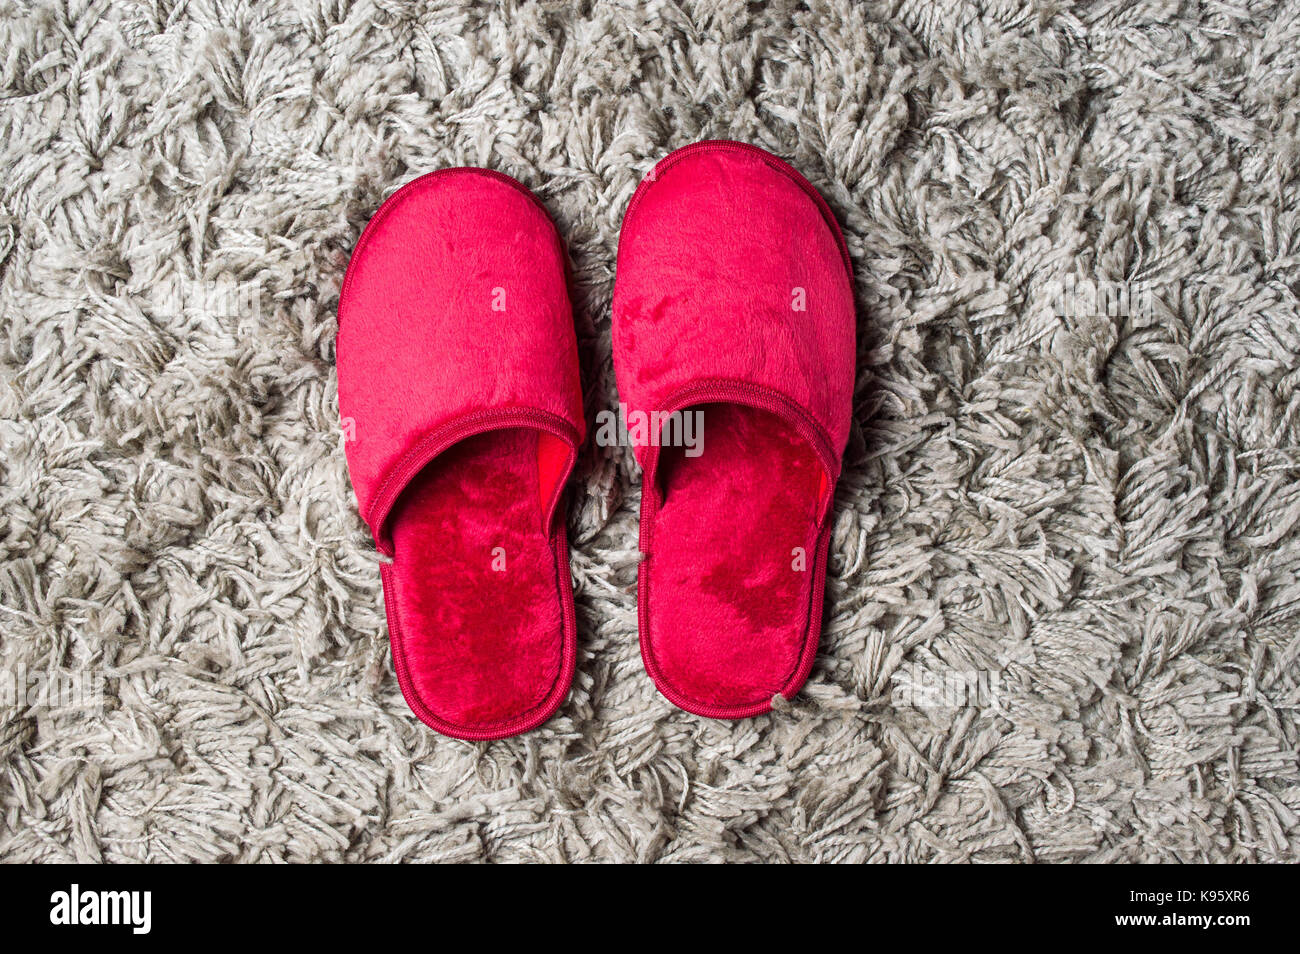 73536191897 Red house slippers on fluffy gray carpet Stock Photo  160556010 - Alamy